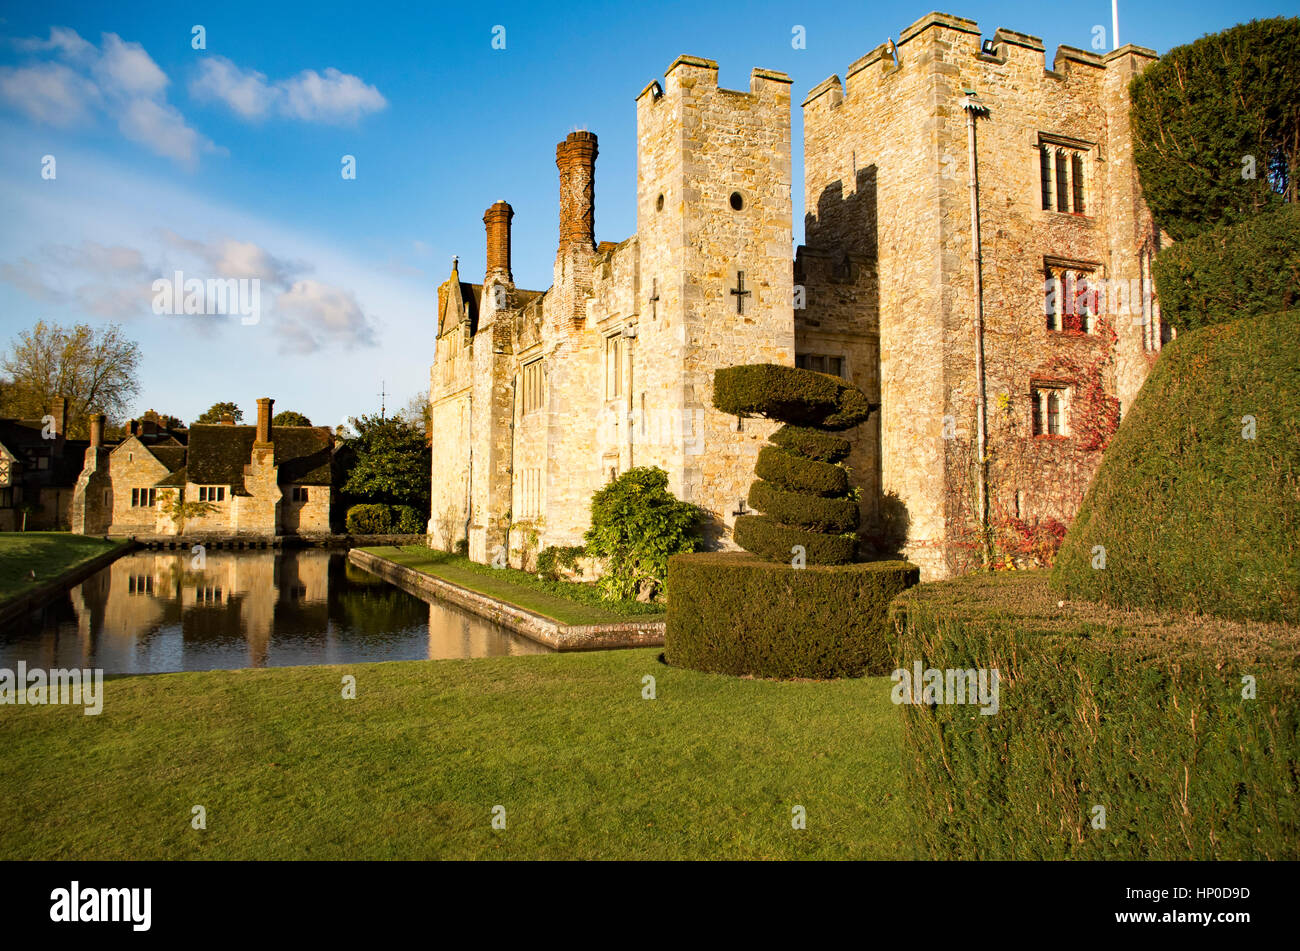 Hever Castle and Moat - Stock Image